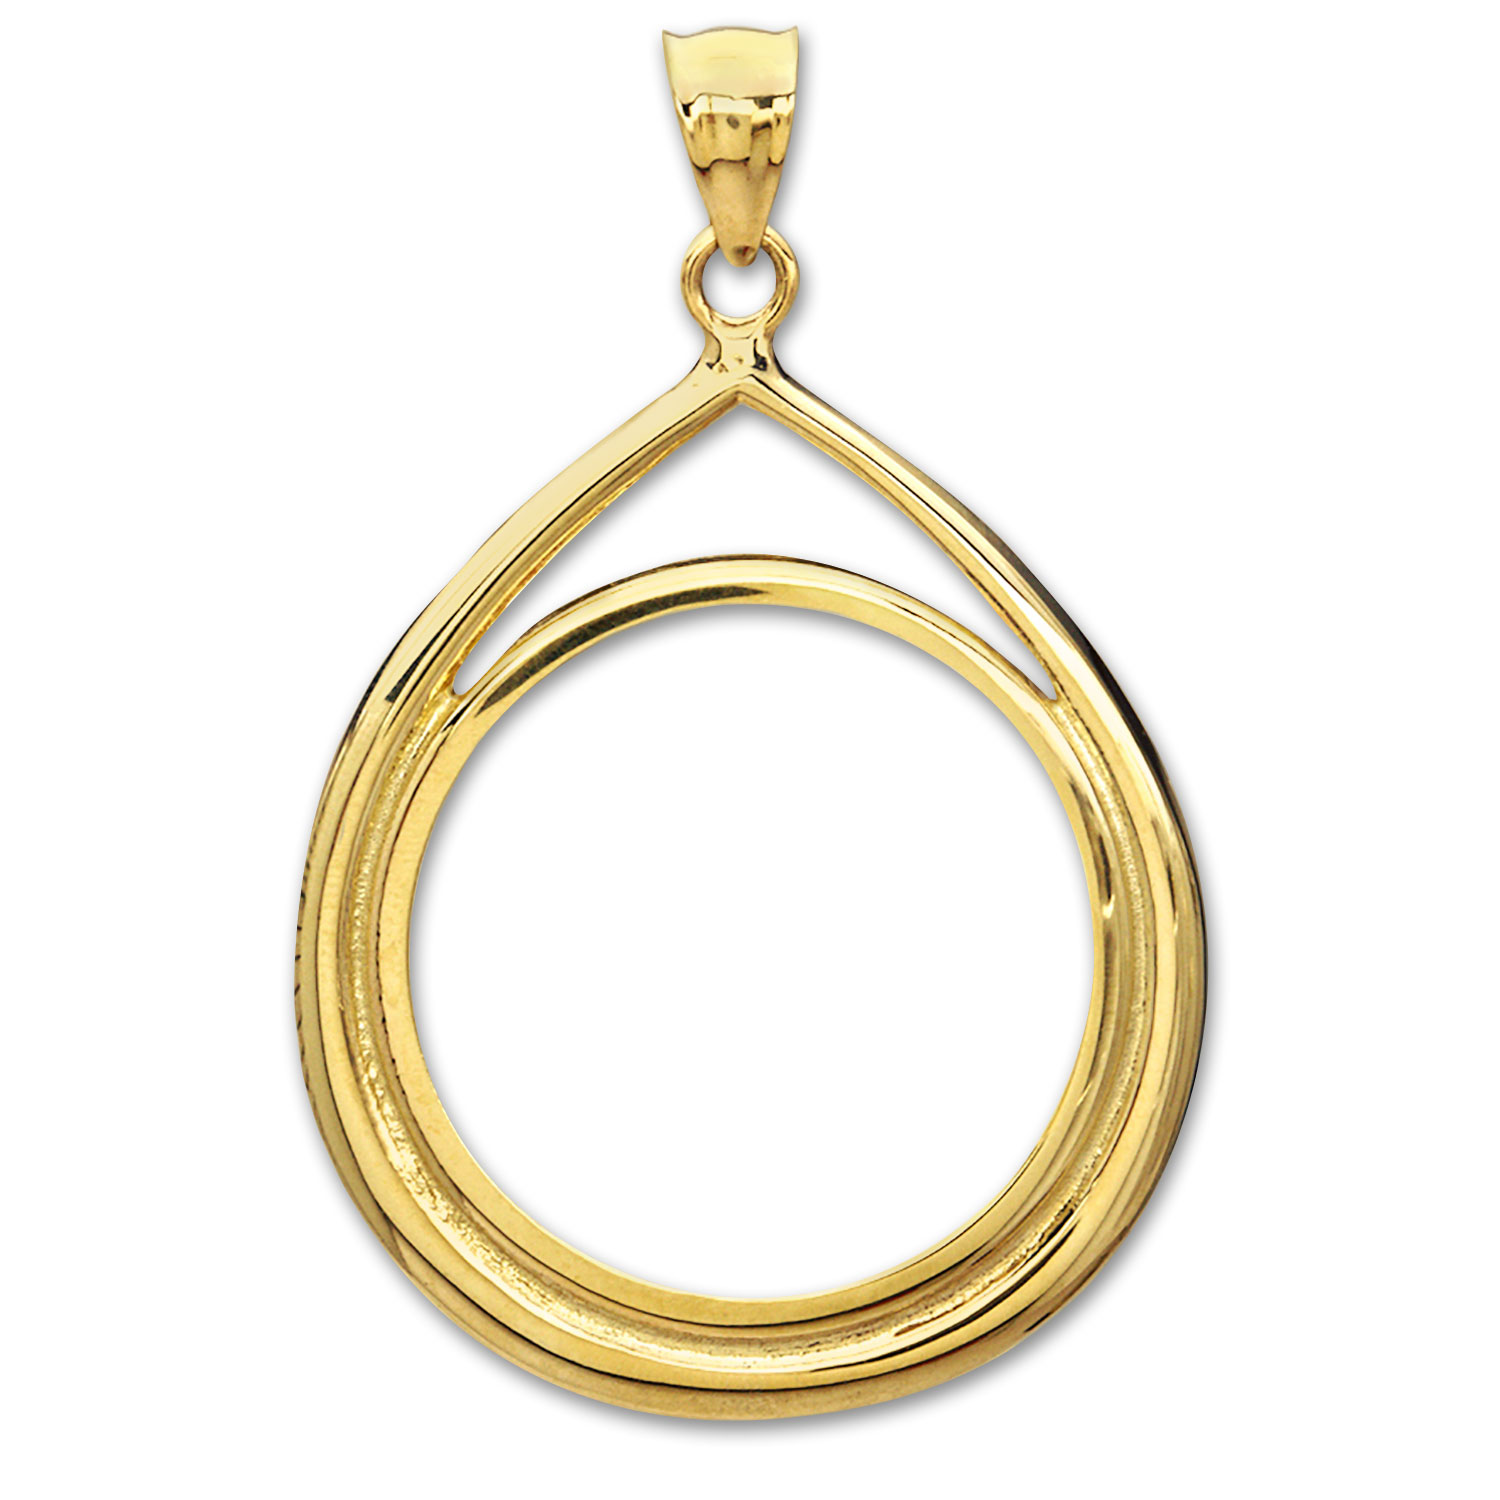 14K Gold Prong Tear Drop Bezel - 22 mm